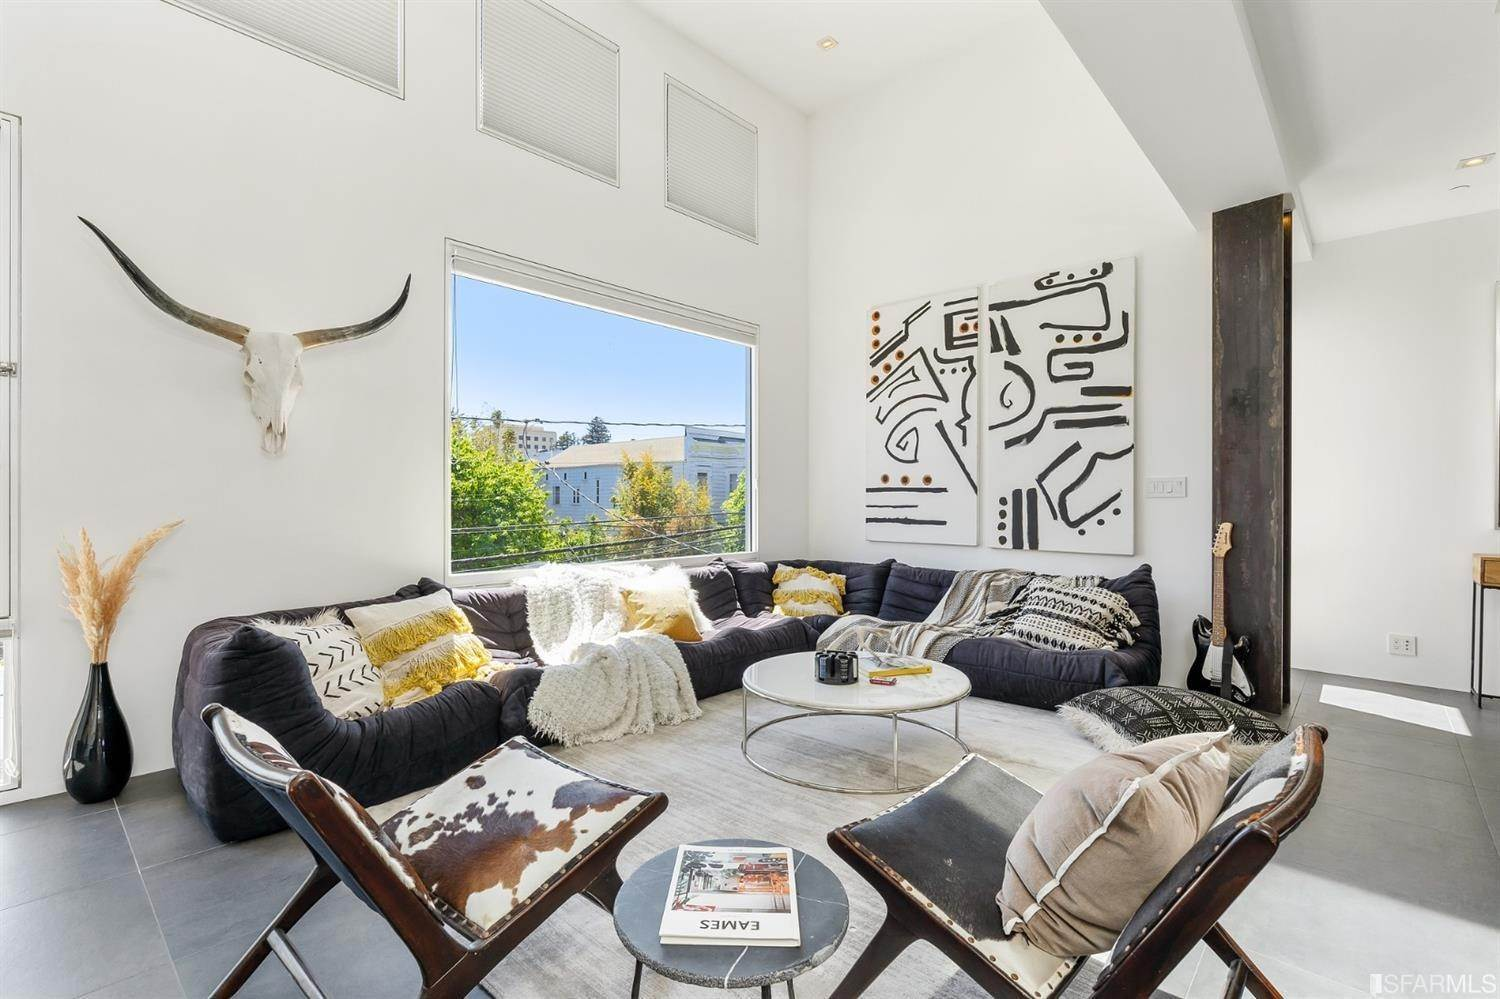 Tenancy In Common for Sale at 3120 23rd Street San Francisco, California 94110 United States